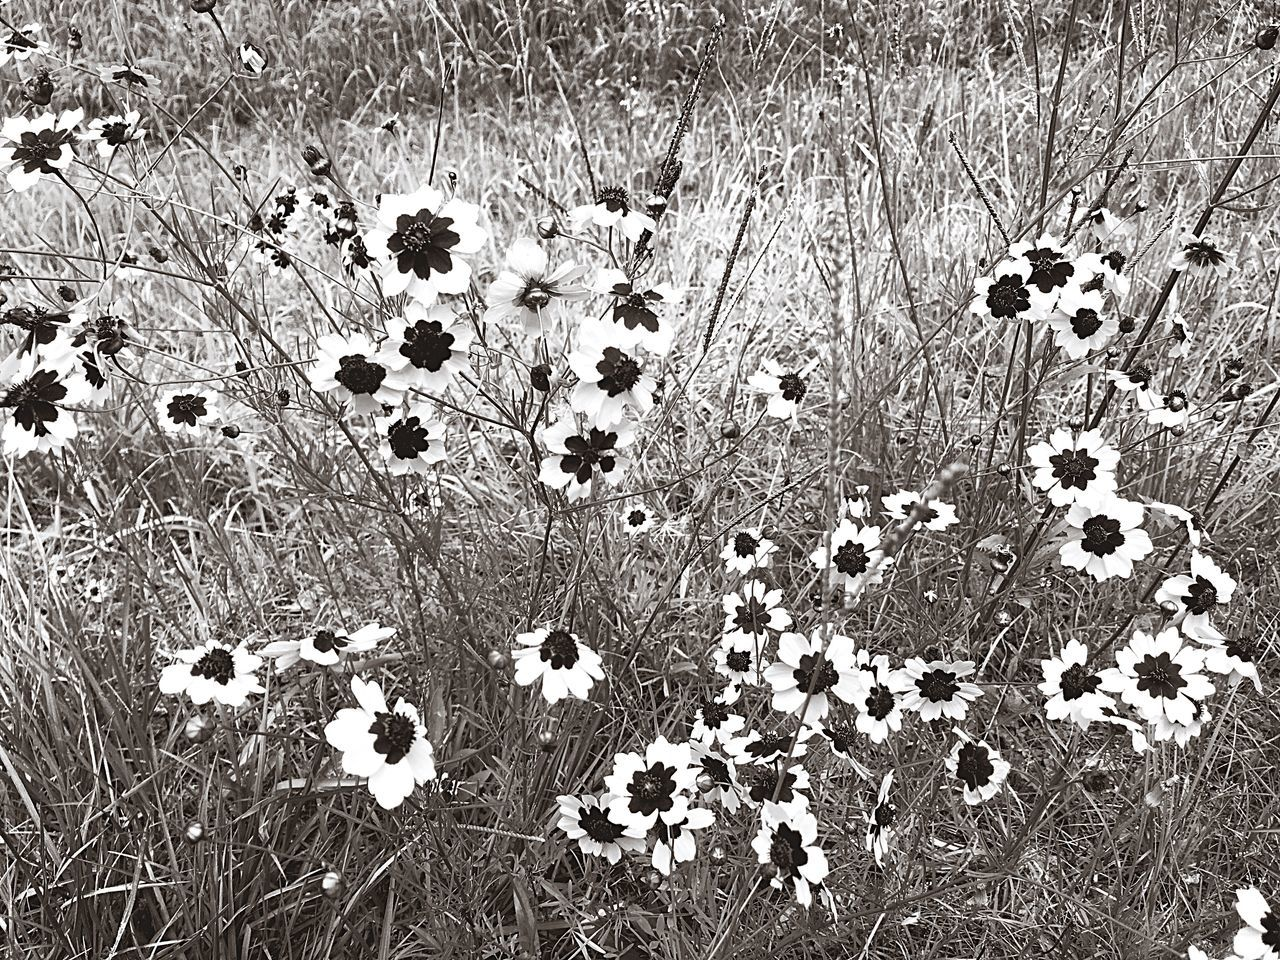 I Love The Little Things In Life 😍 Wild Flowers In Black And White Monochrome Photography